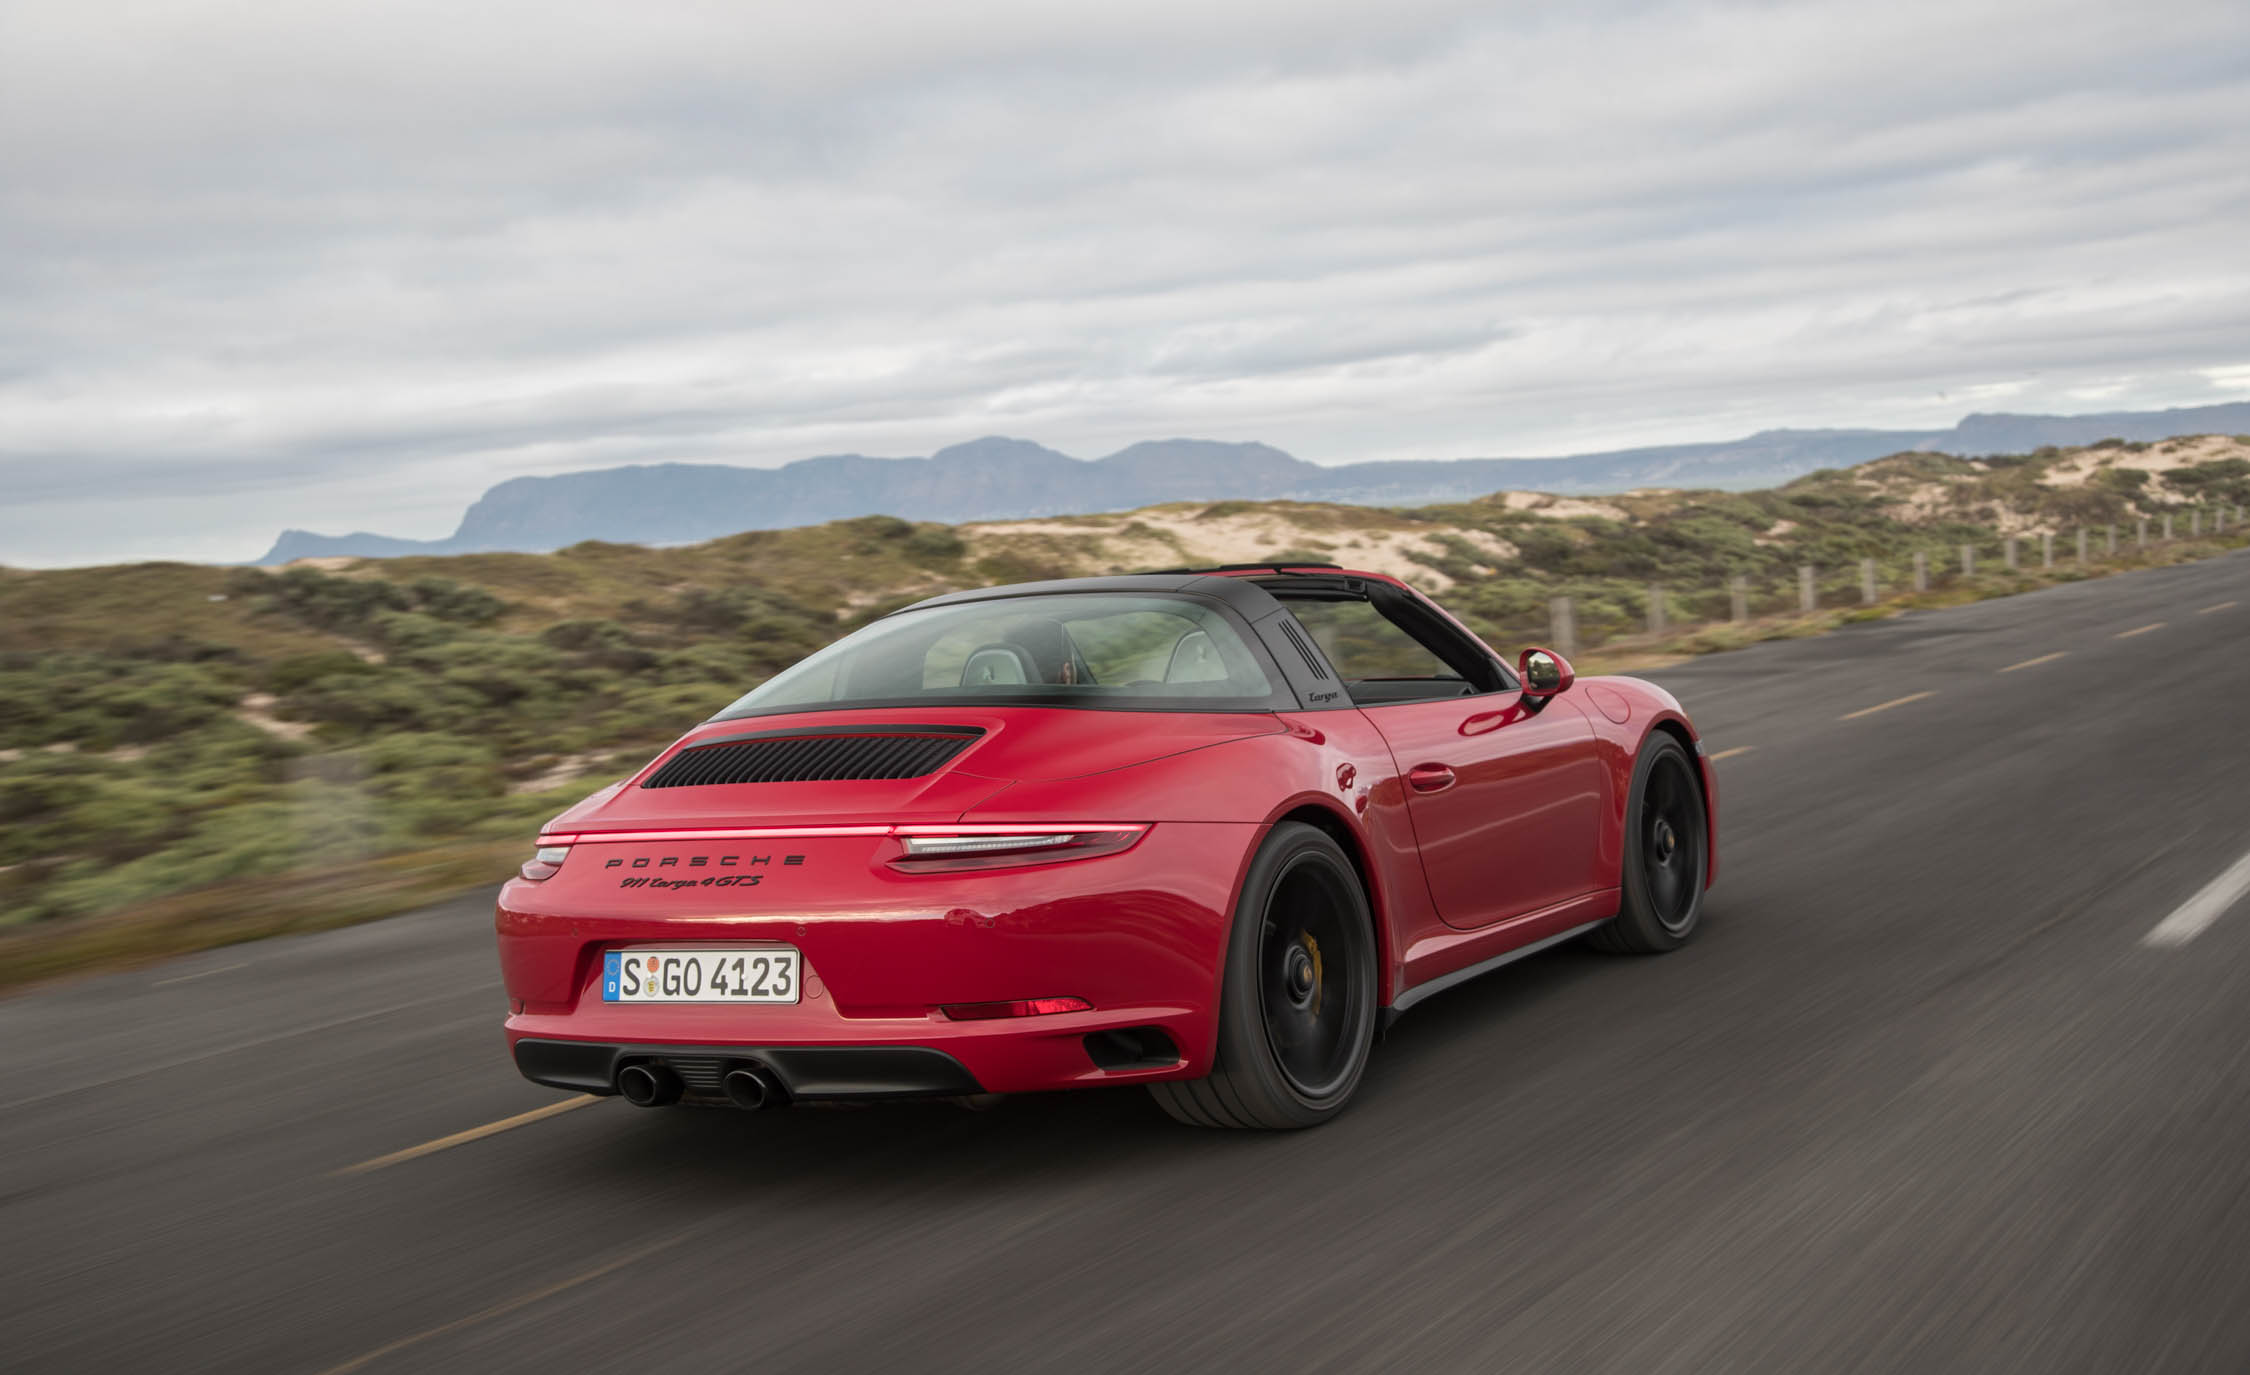 2017 Porsche 911 Targa 4 GTS Red Test Drive Side And Rear View (Photo 90 of 97)